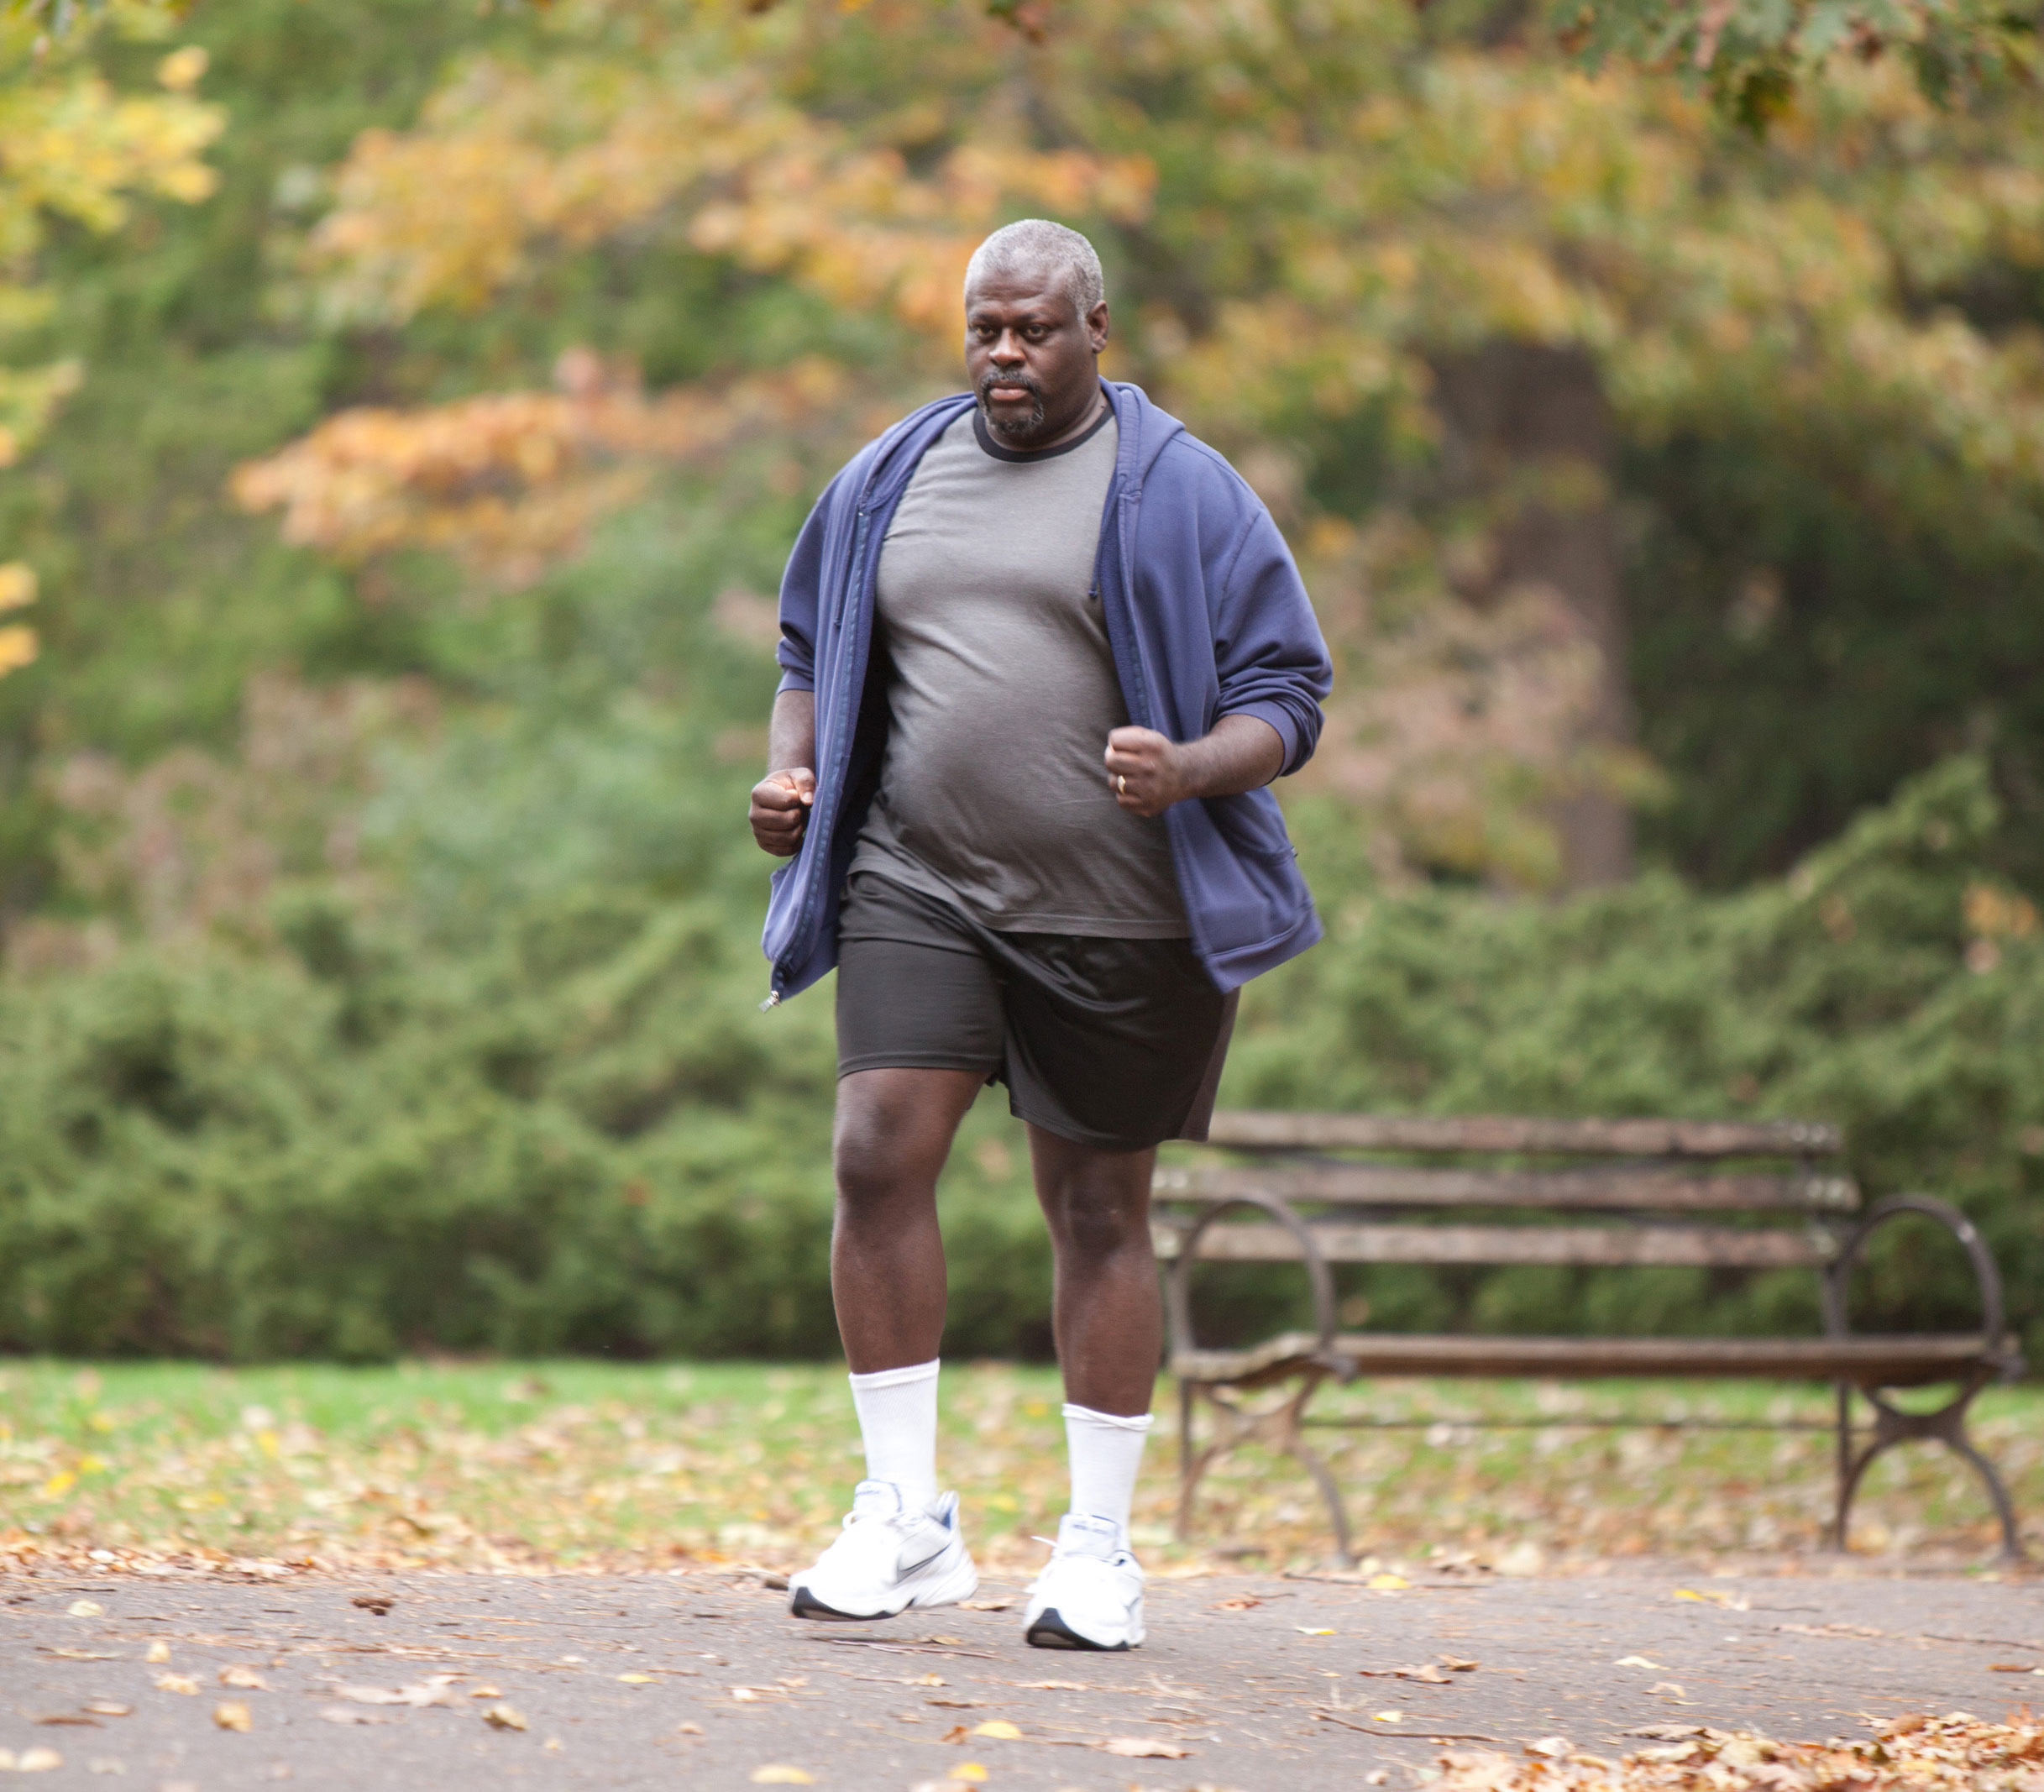 Walking really is the absolutely perfect adaptive exercise for us heavy people!